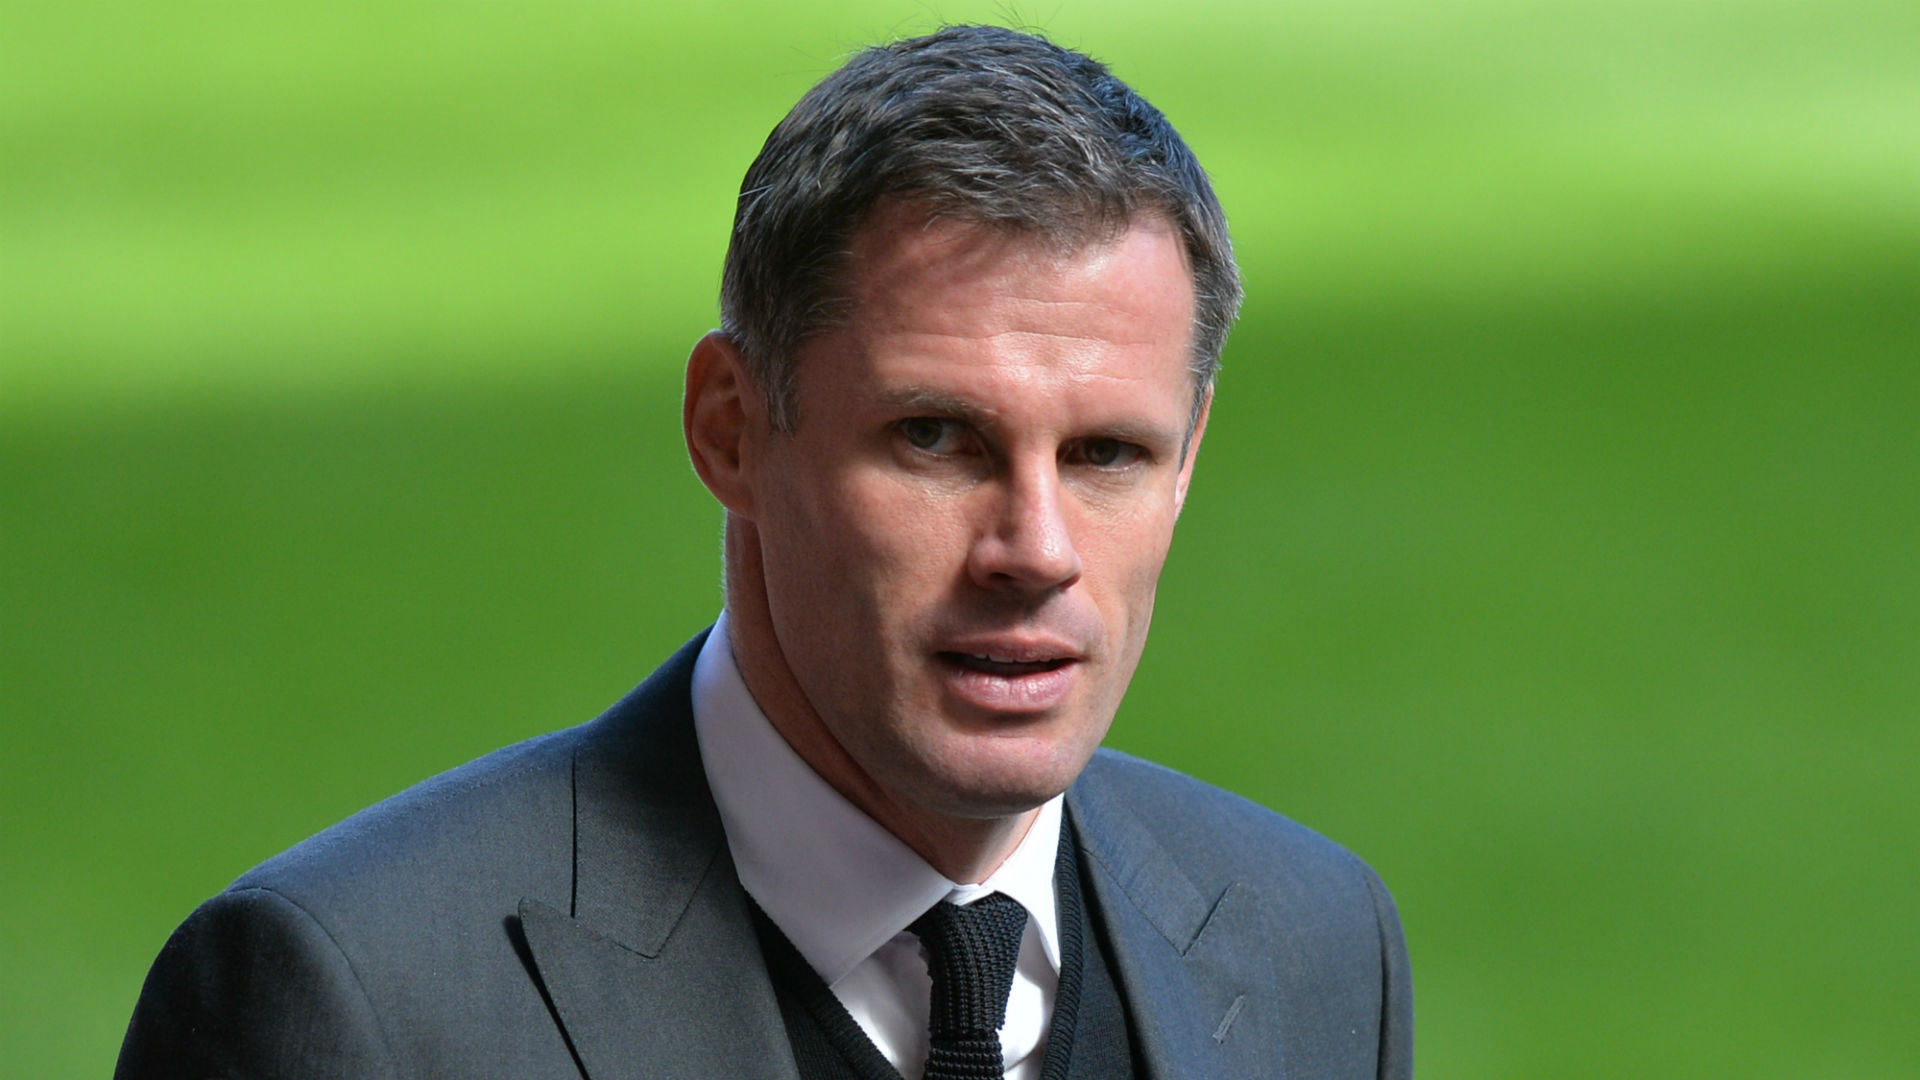 Carragher apologises to Evra for t-shirts worn in support of Suarez